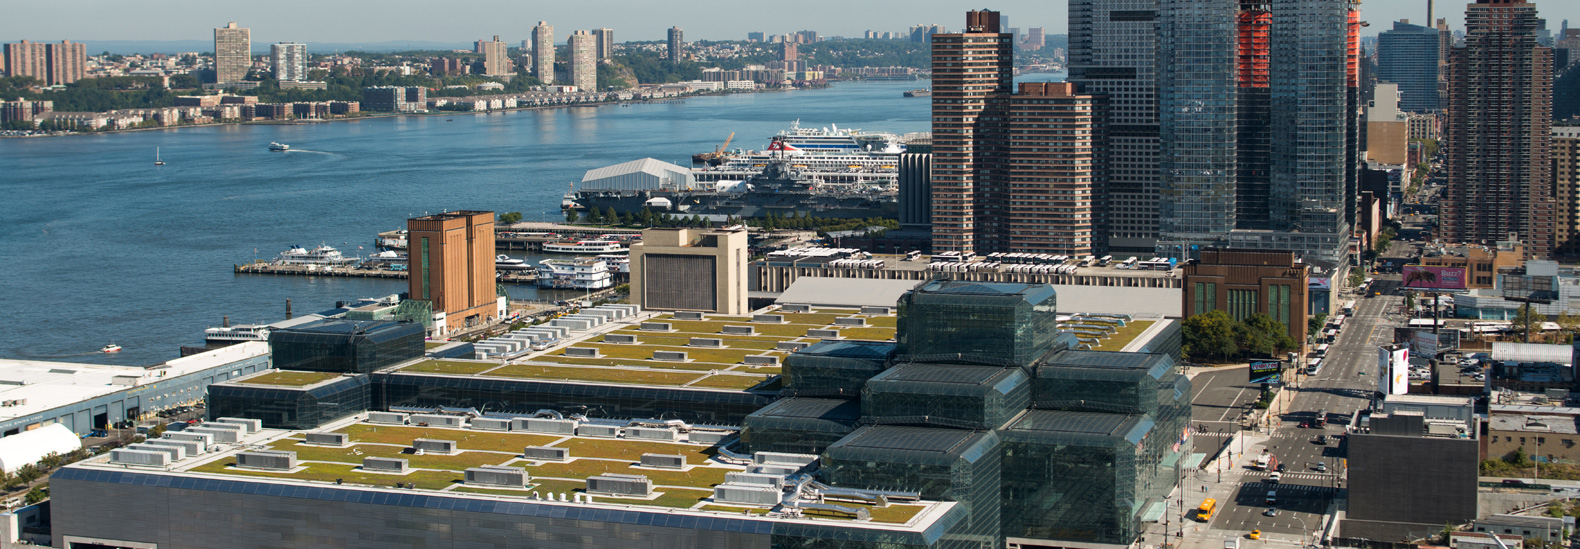 Green Roofs To Take Over Nyc Skyline By Law